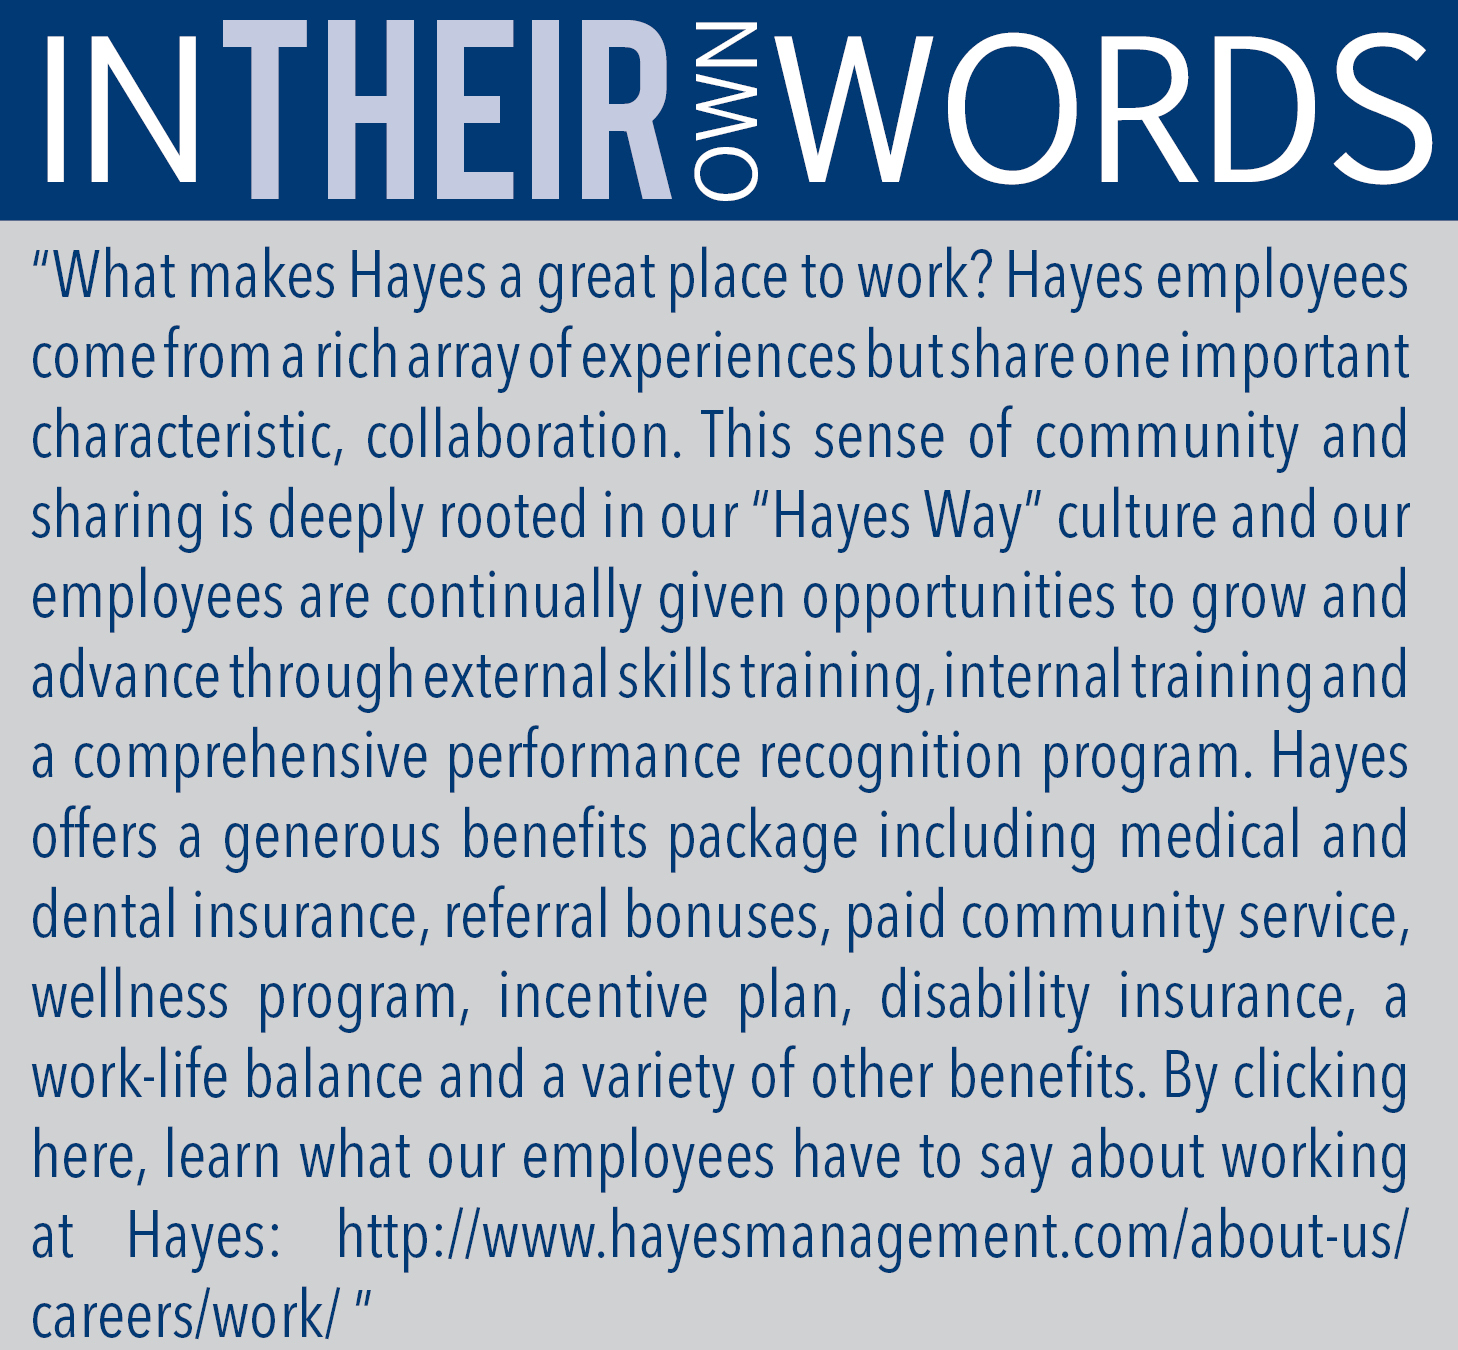 hayes-management-words